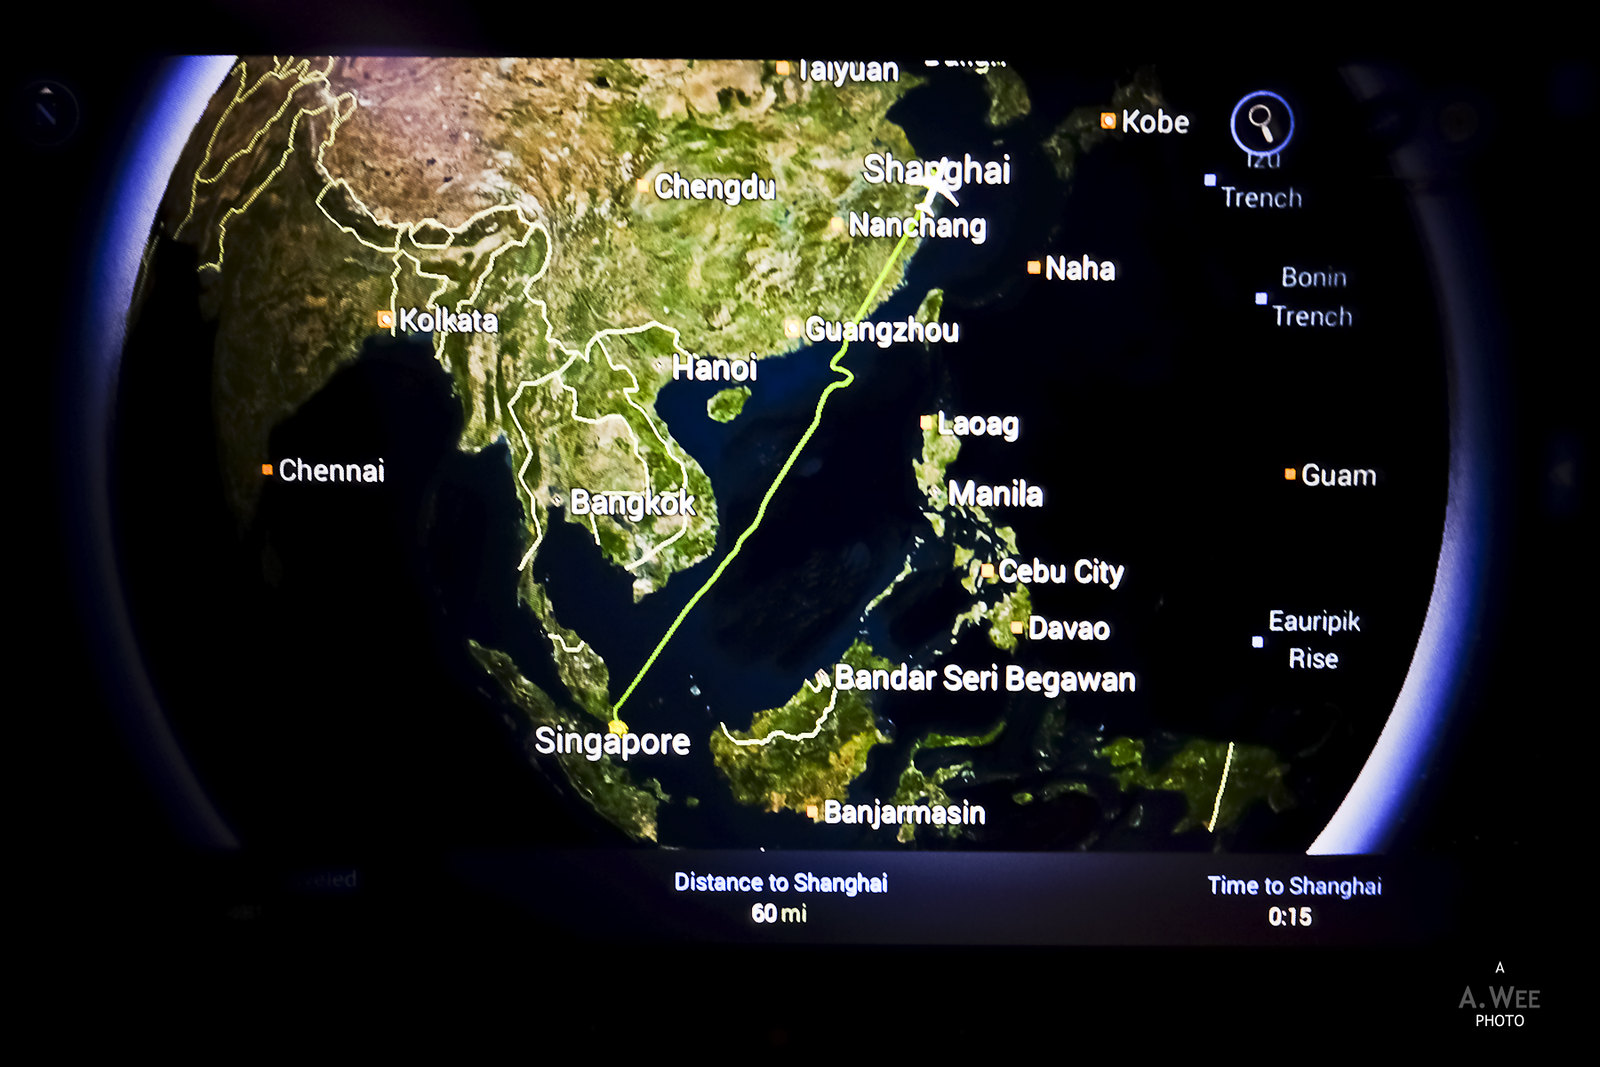 Flight route to Shanghai